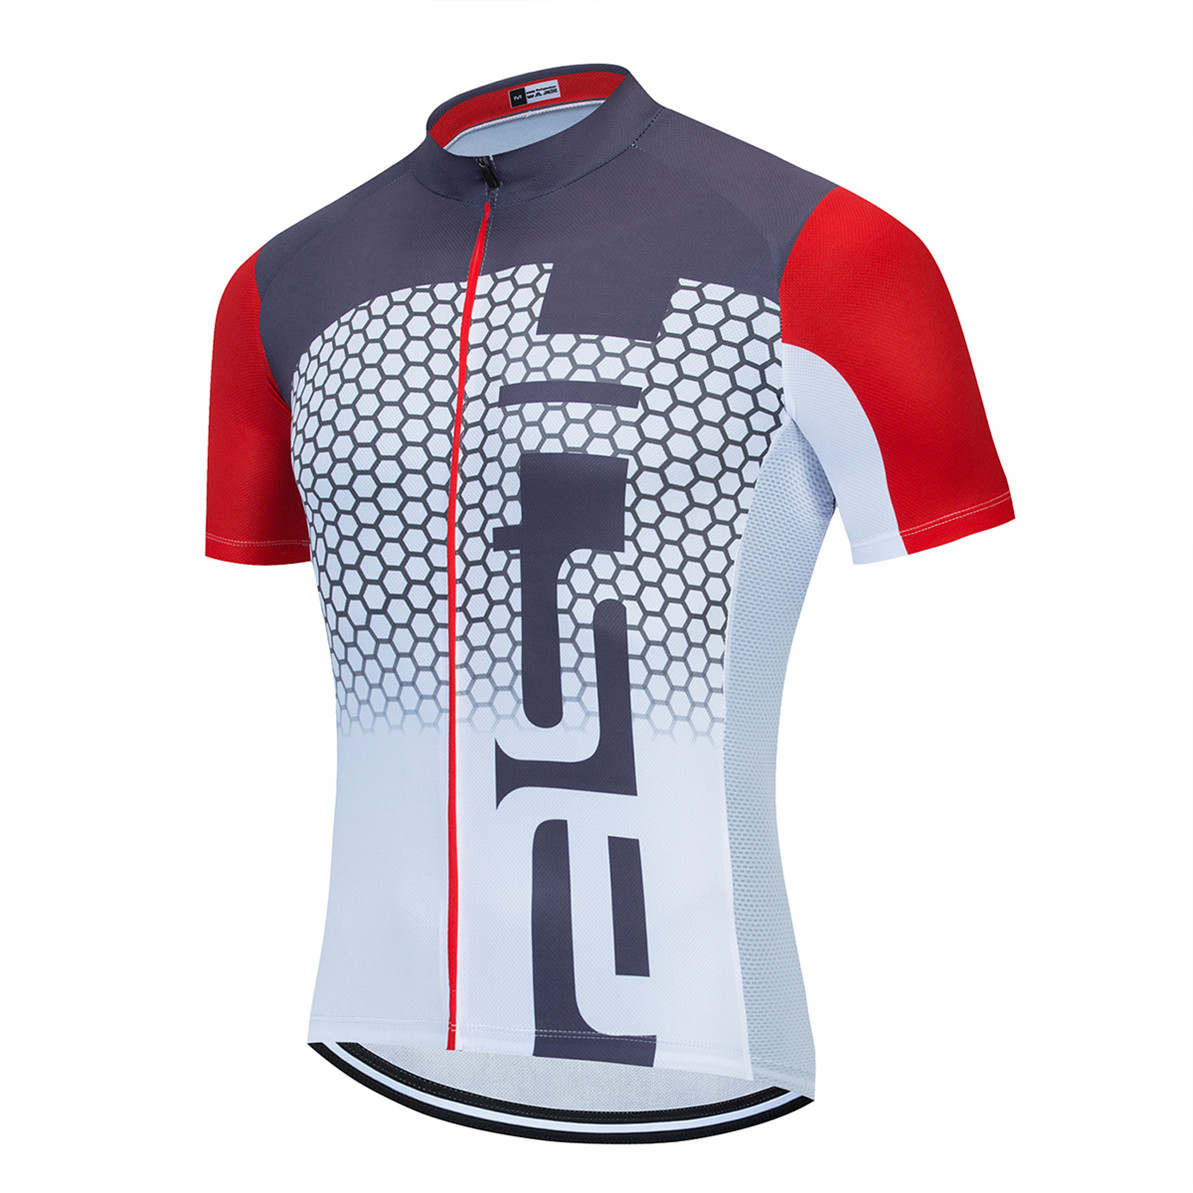 2020 Cycling Jersey Men Bike Jerseys Racing Bicycle Top pro Team Ropa Ciclismo mtb Mountain Shirt short sleeve summer white red